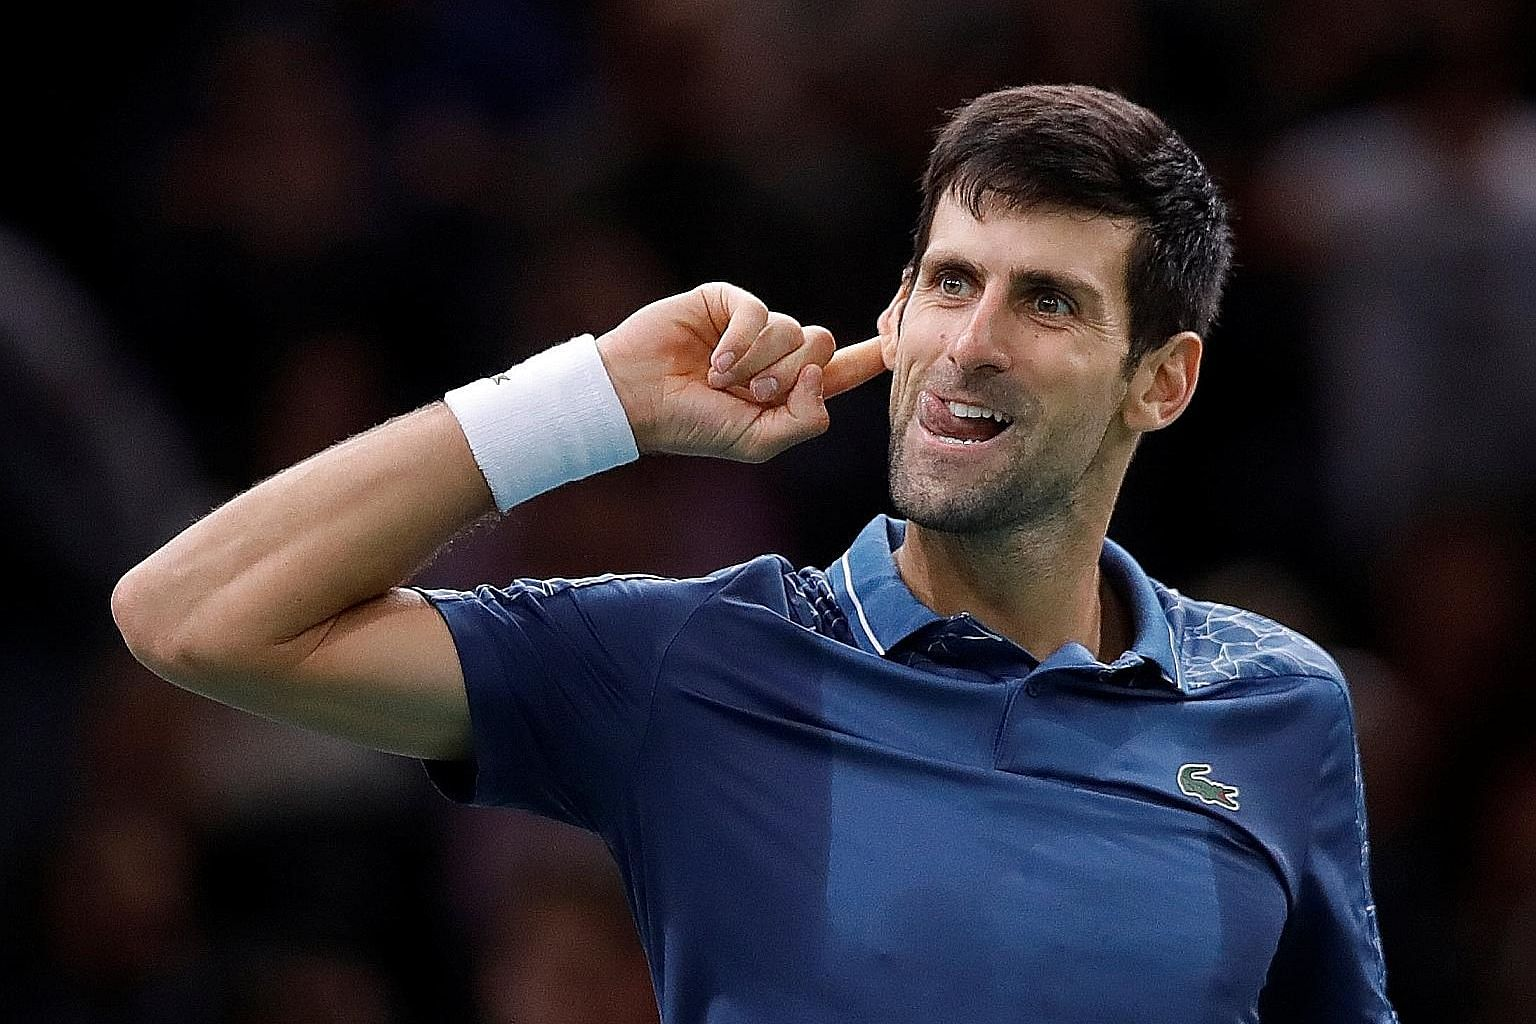 Novak Djokovic plays to the crowd after his marathon 7-6 (8-6), 5-7, 7-6 (7-3) victory over Roger Federer at the Paris Masters on Saturday.